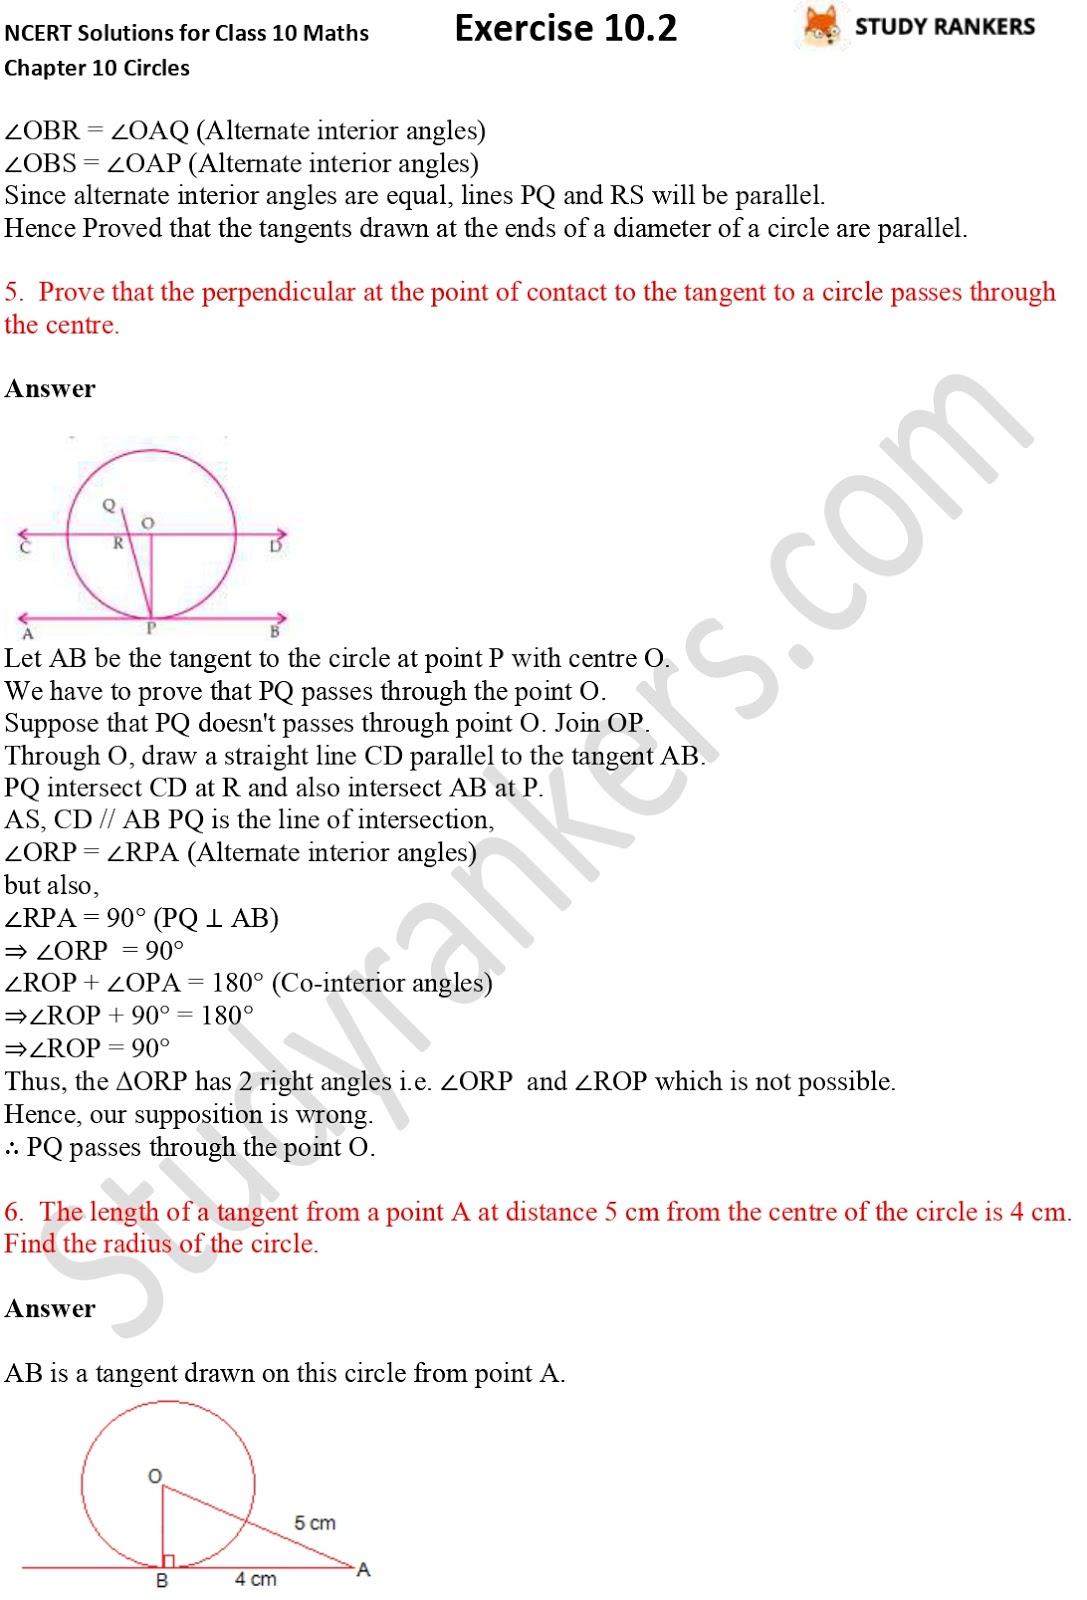 NCERT Solutions for Class 10 Maths Chapter 10 Circles Exercise 10.2 Part 4